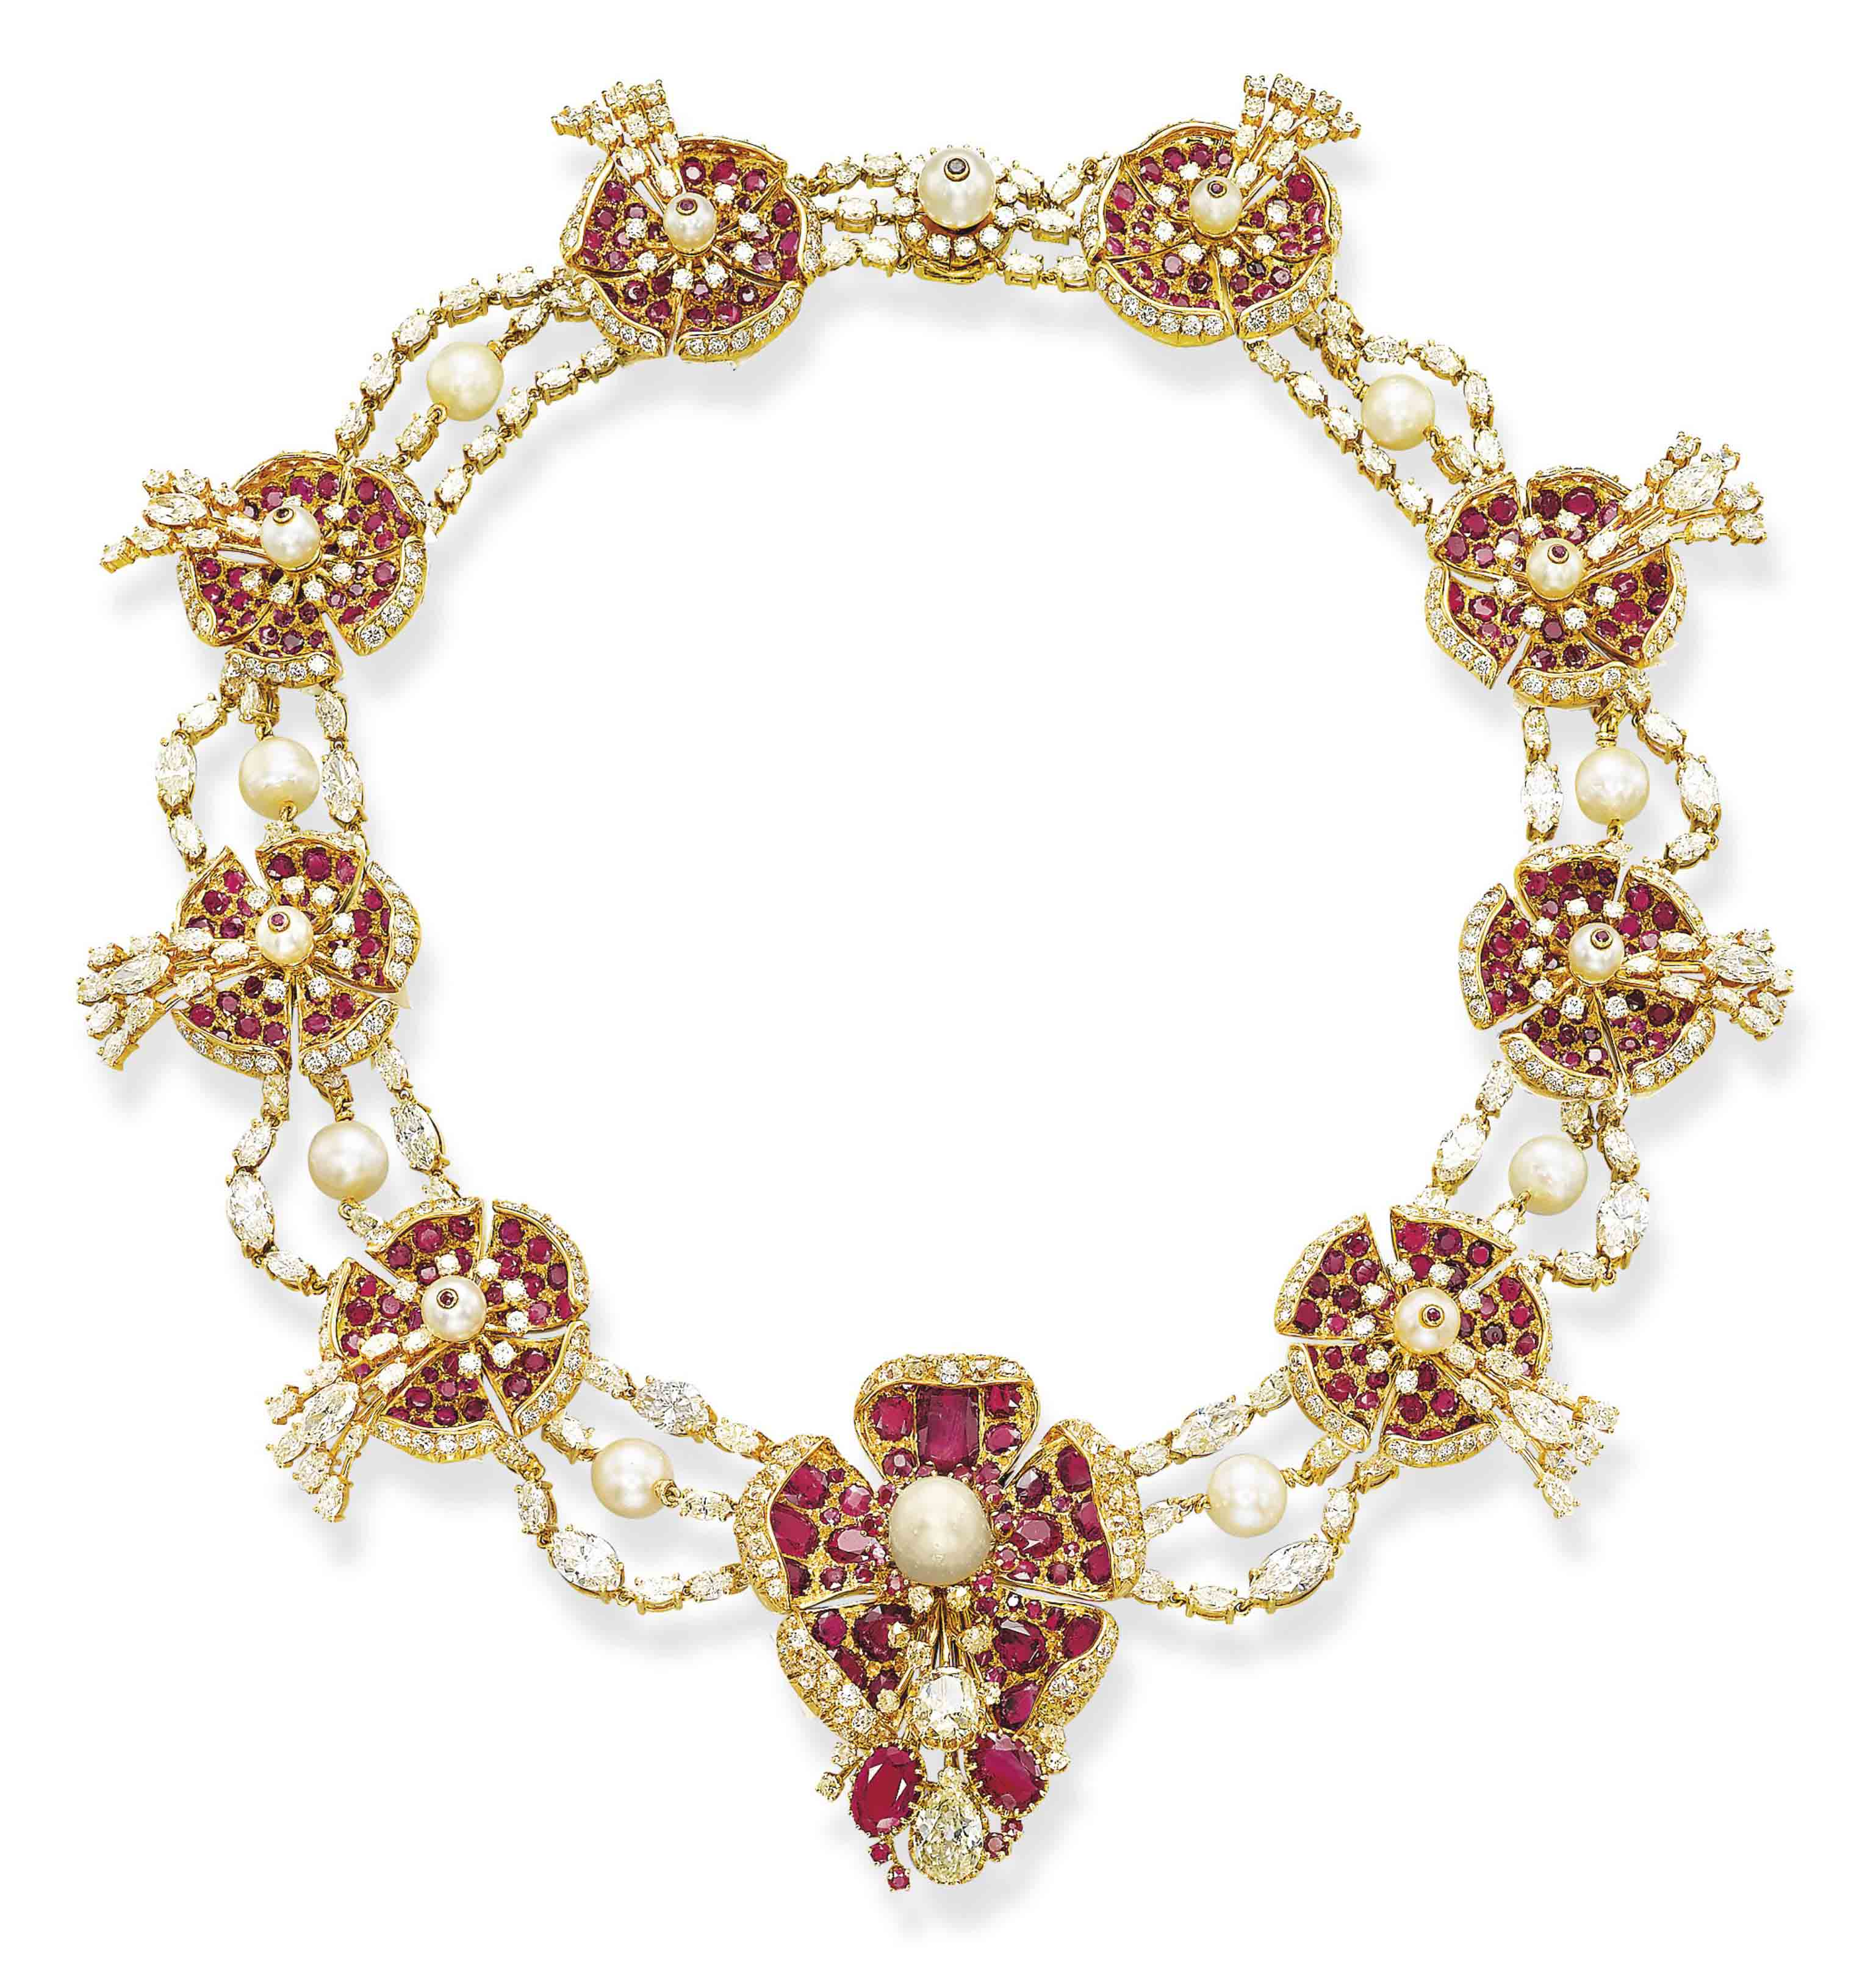 A RUBY, PEARL AND DIAMOND NECKLACE, BY LOMBARD